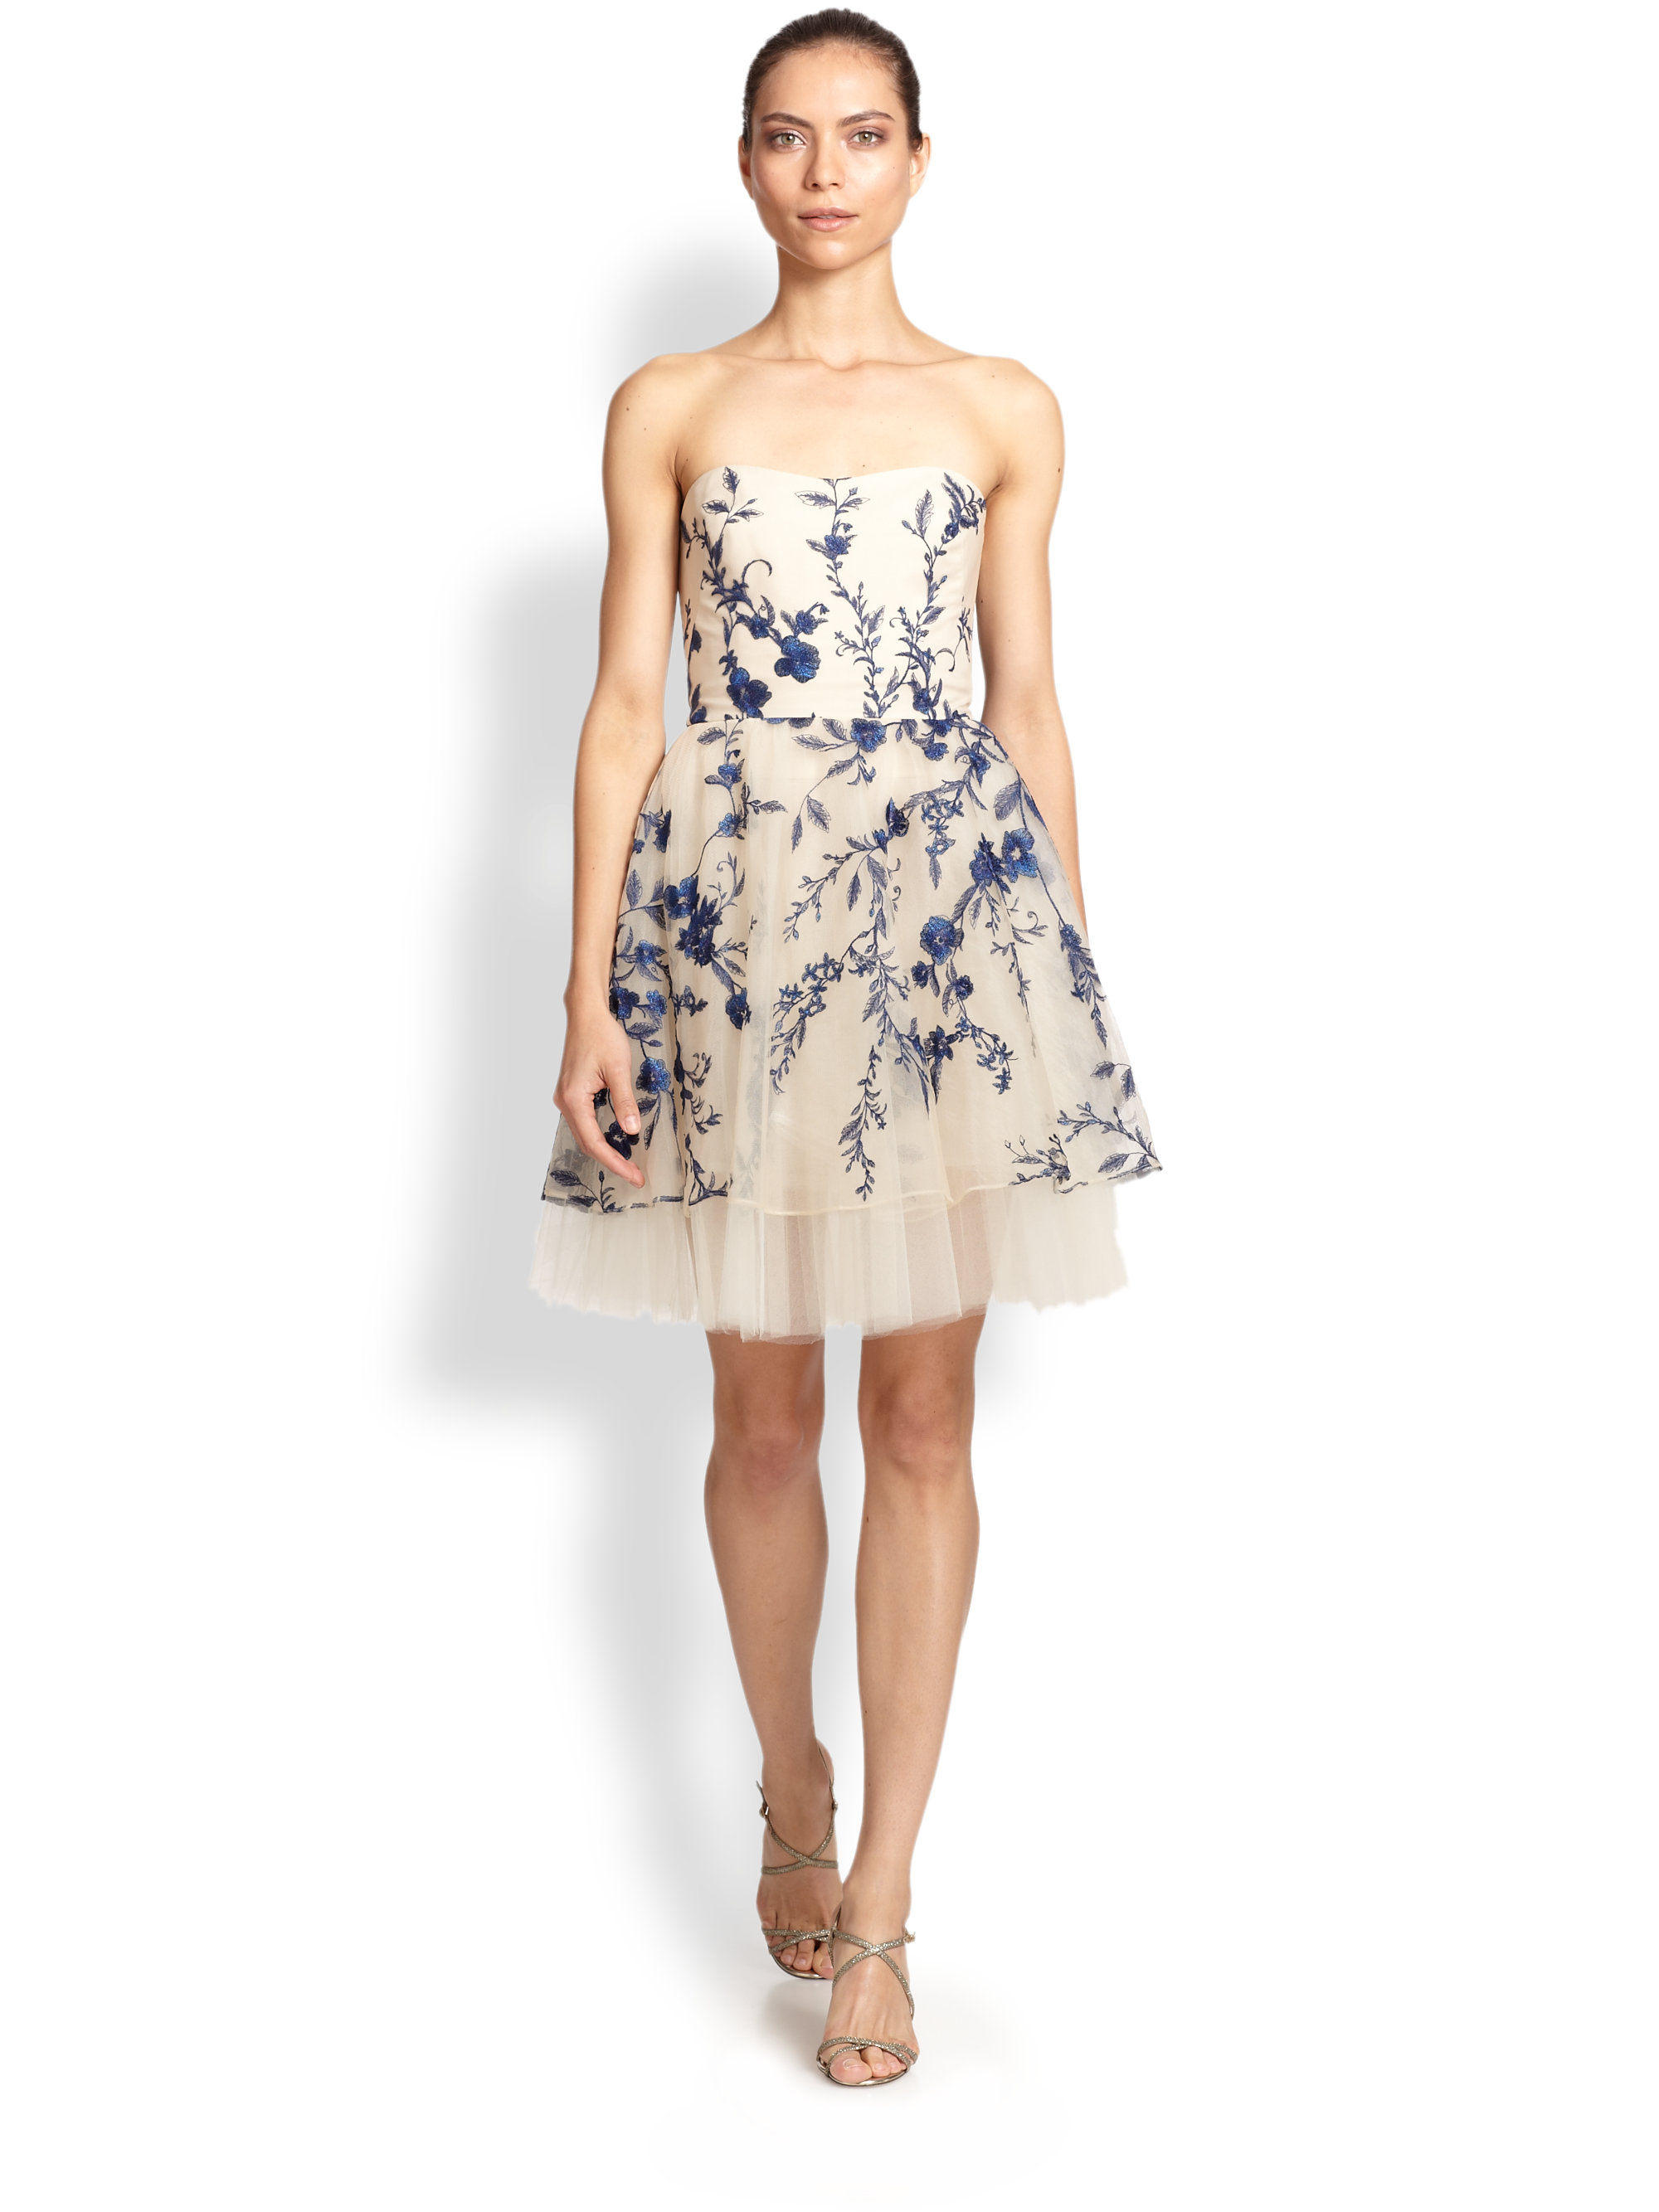 7db31eee171 Marchesa notte Strapless Floral-Embroidered Cocktail Dress in Pink ...